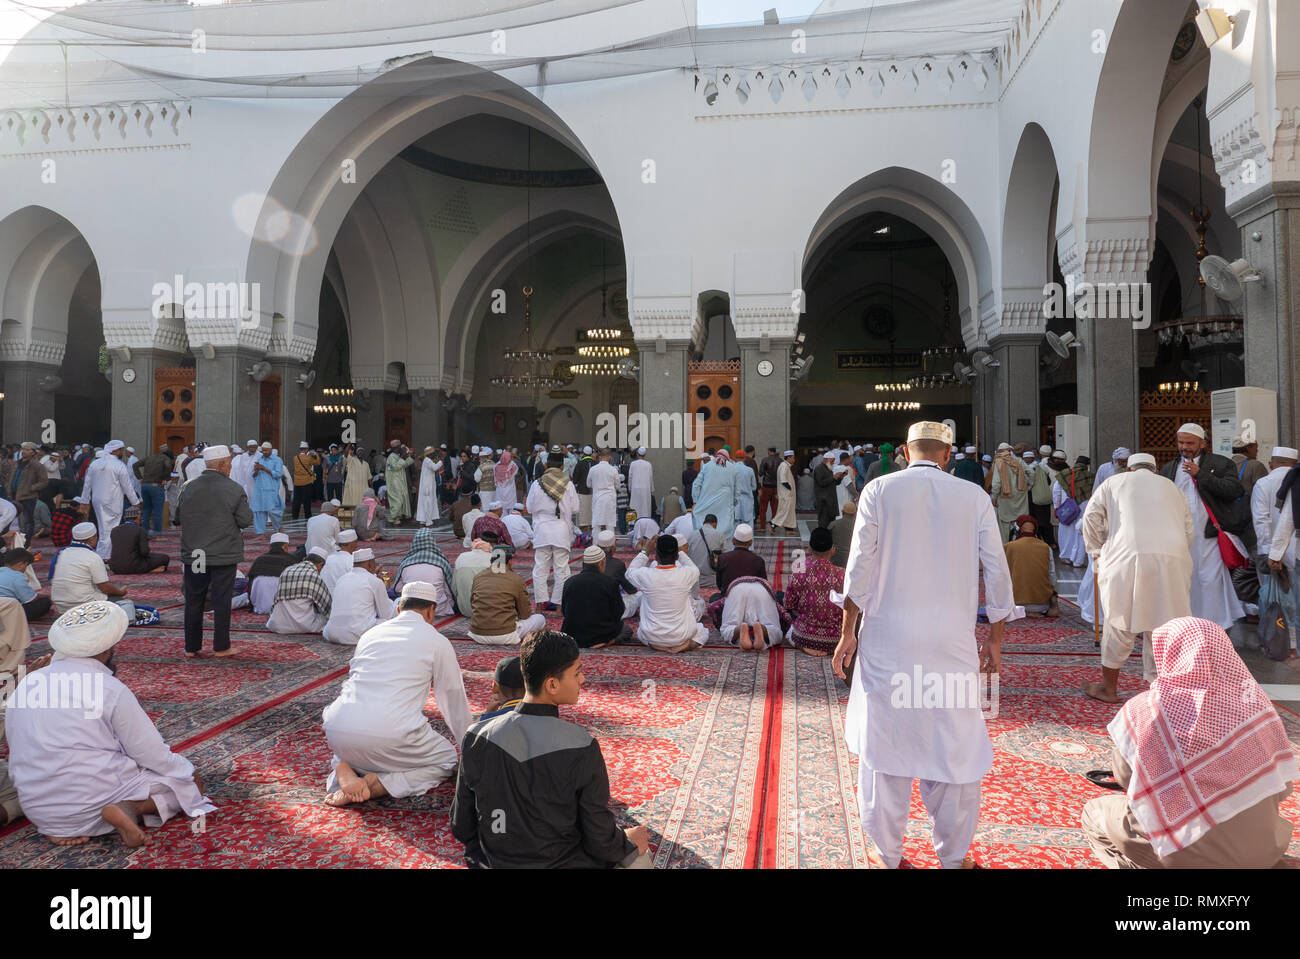 MEDINA, SAUDI ARABIA-CIRCA 2016 : Pilgrims pray inside Quba mosque in Medina. Quba mosque is the first mosque built by Prophet Mohammad (peace be upon - Stock Image